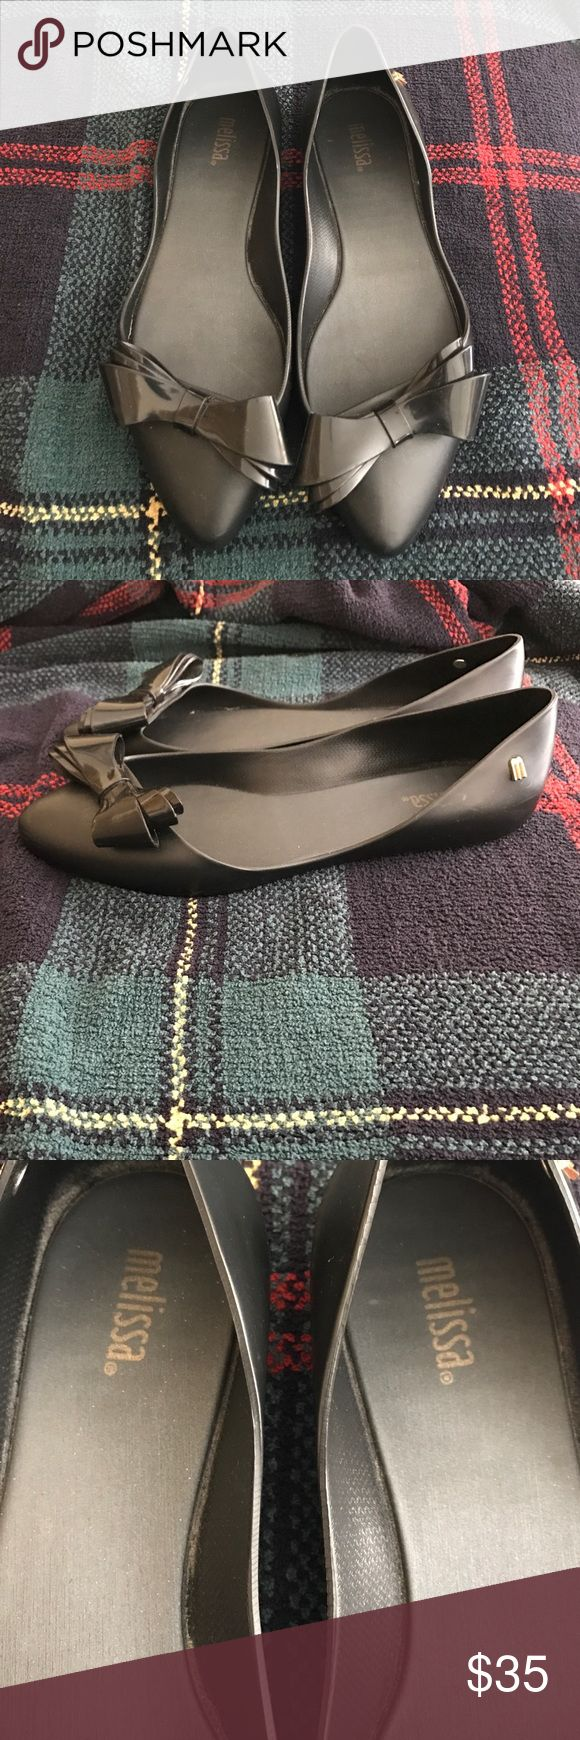 Pointy Toe Melissa Flats Melissa Pointy Toe rubber flats.  Condition 8/10. Signs of wear on the soles (pictured) but not worn down at all.  Emblems and Bows intact have not been repaired or reattached. Melissa Shoes Flats & Loafers